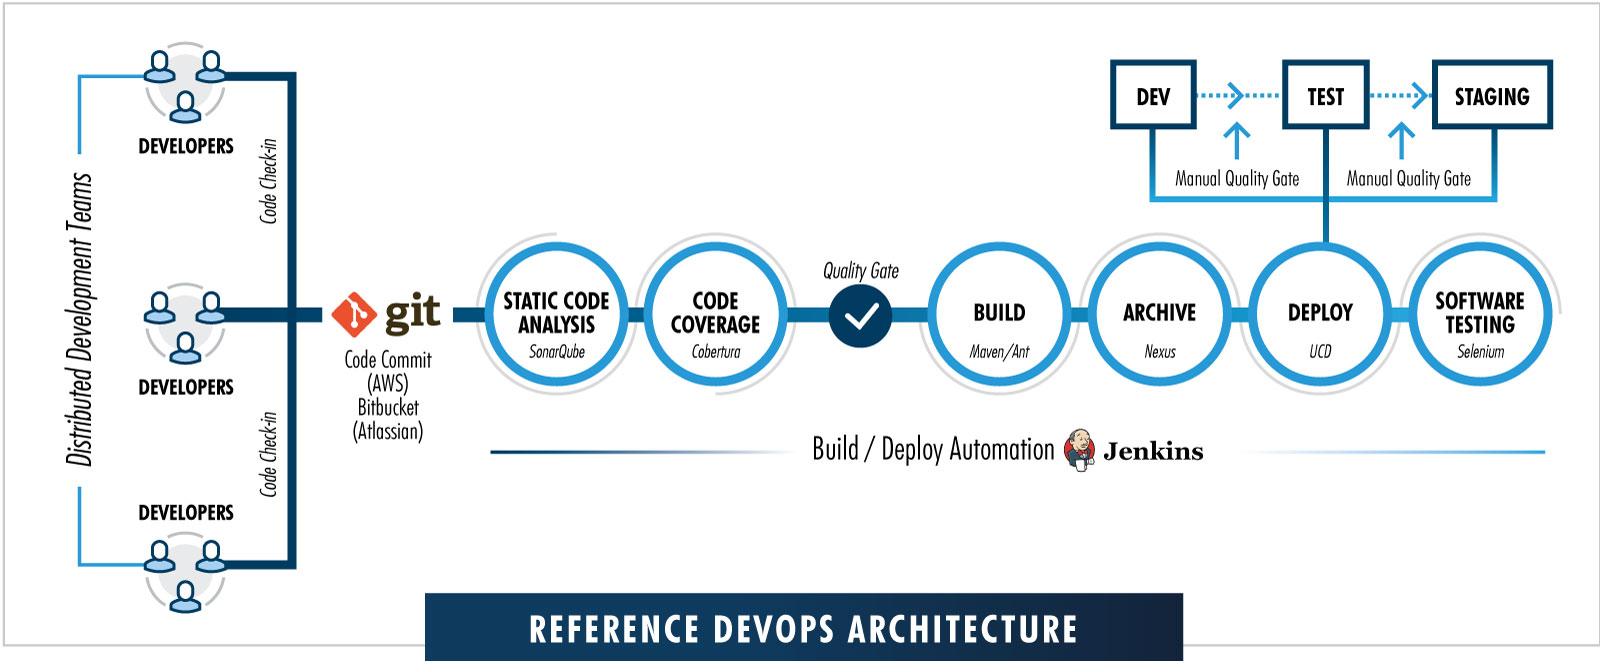 Reference DevOps Architecture